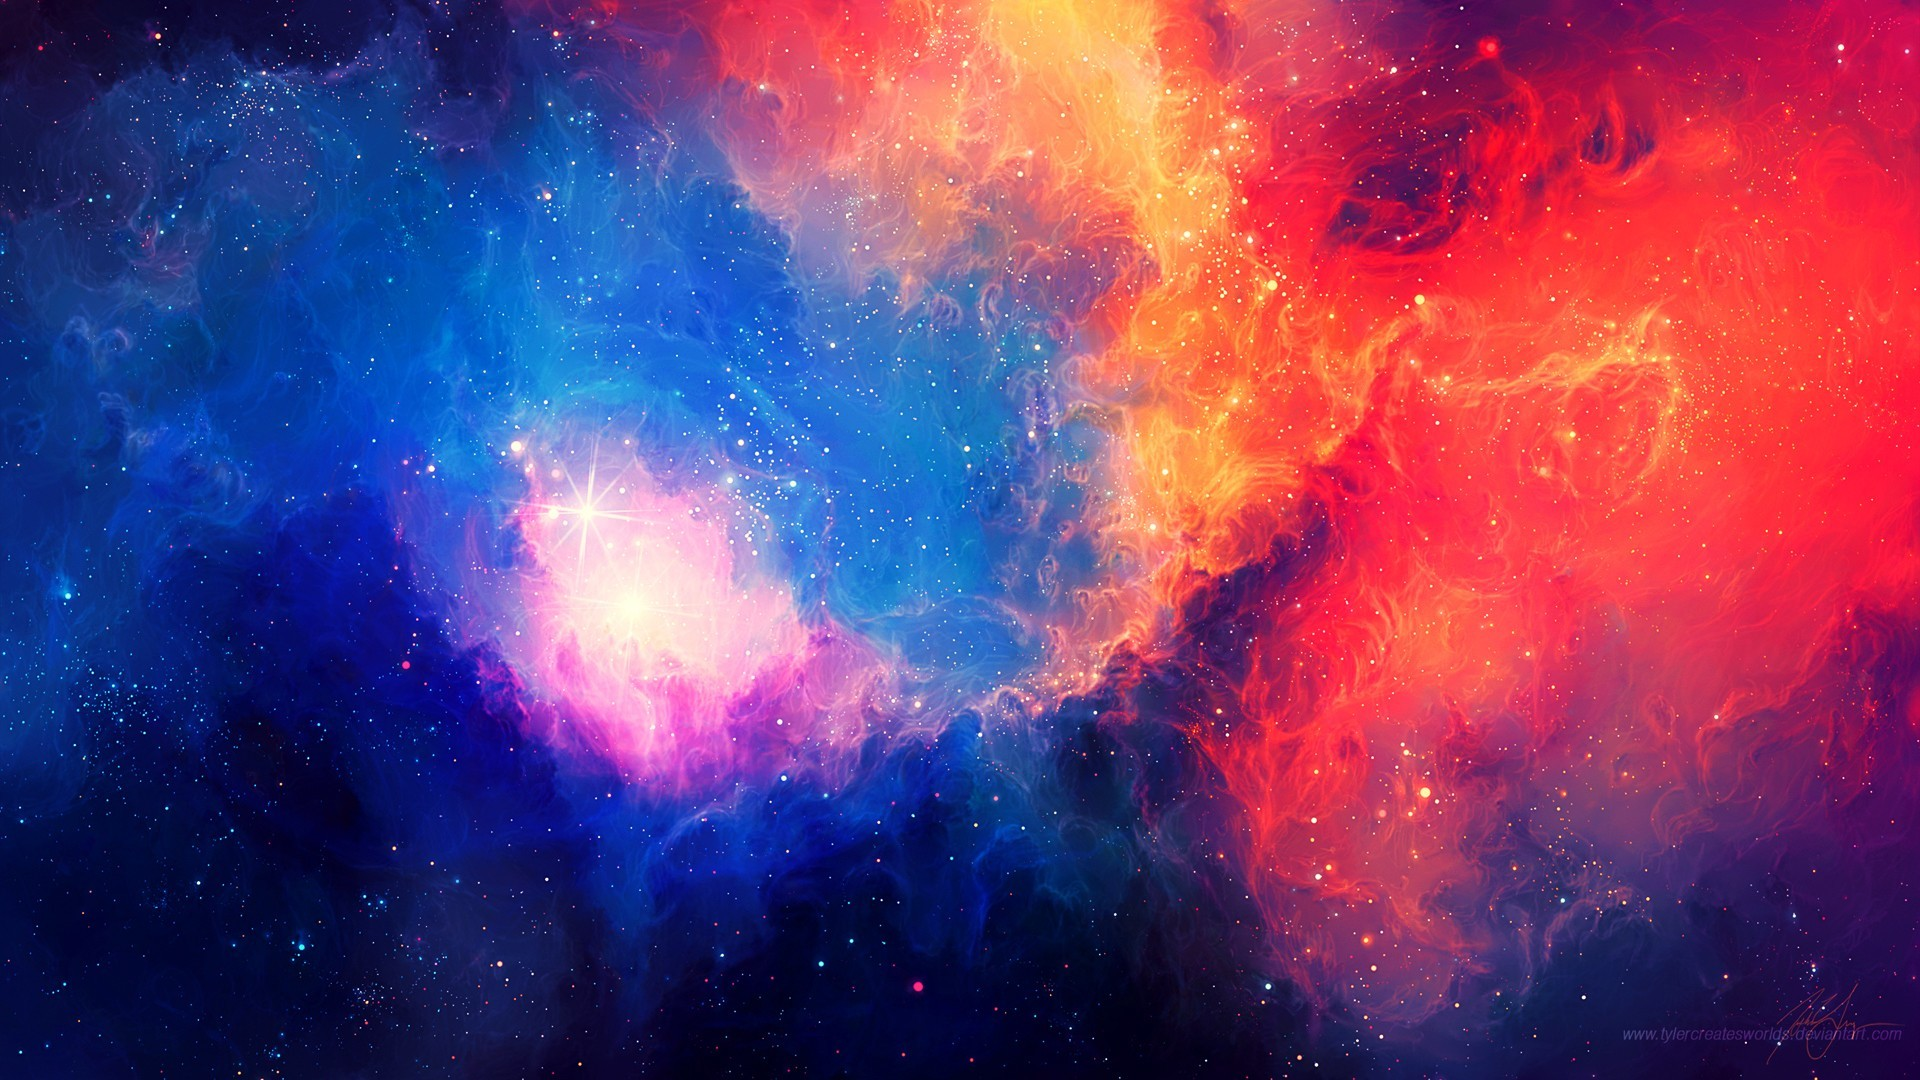 Colorful space wallpapers 73 images - Space wallpaper phone ...